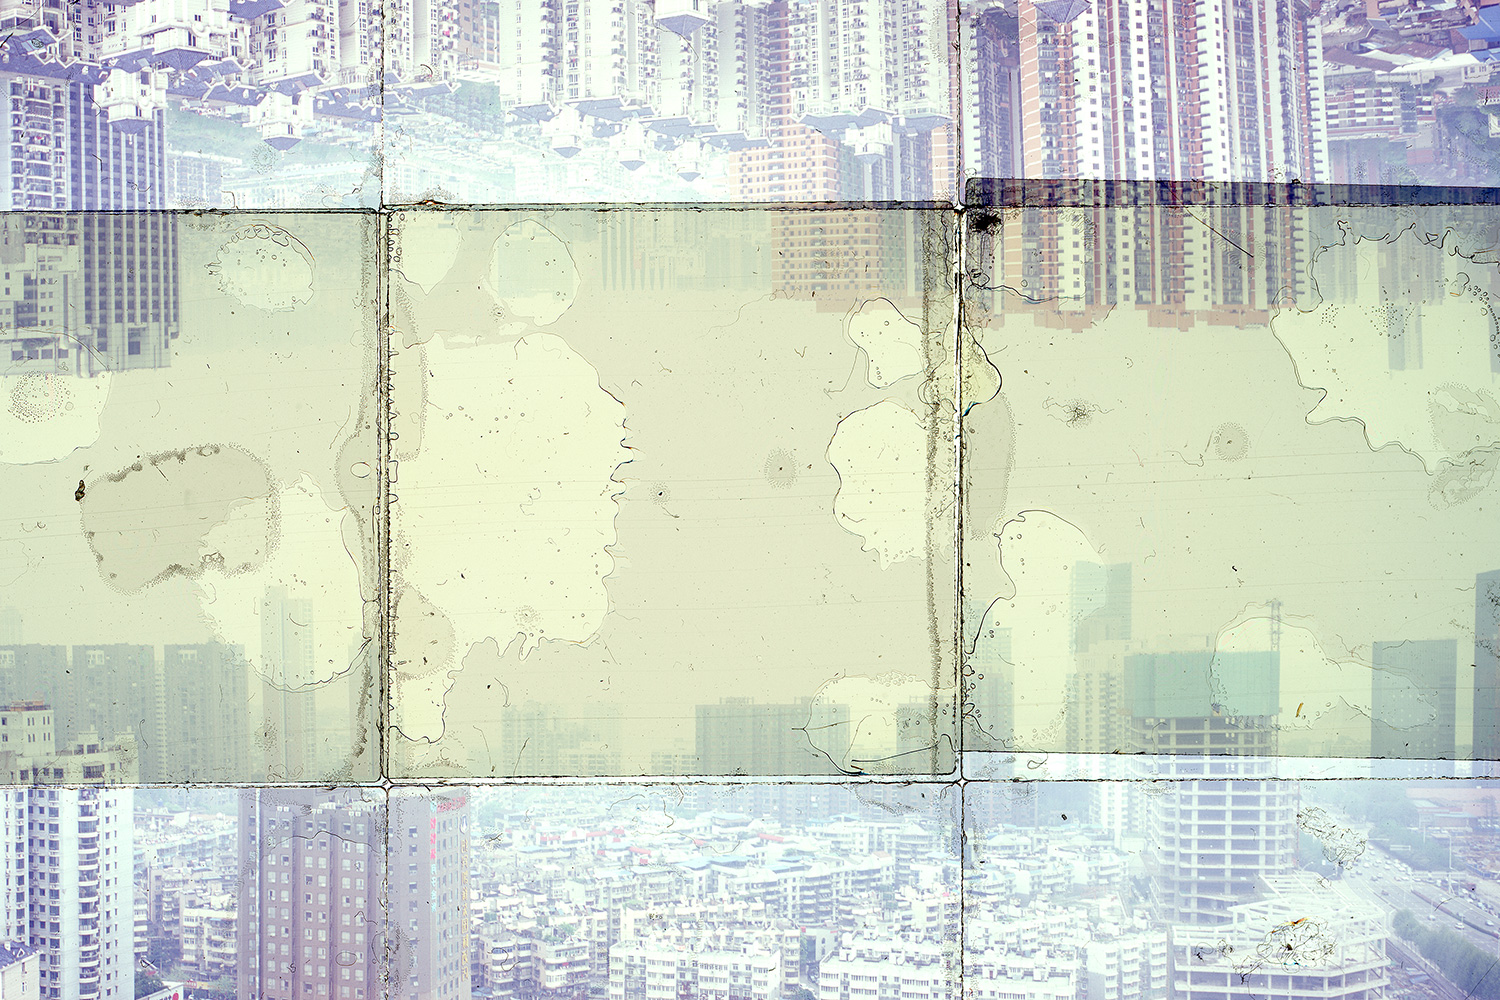 [DETAIL} WUHAN, CHINA 2  , GICLEE PRINT FROM TRANSPARENCY FILM COMPOSITION